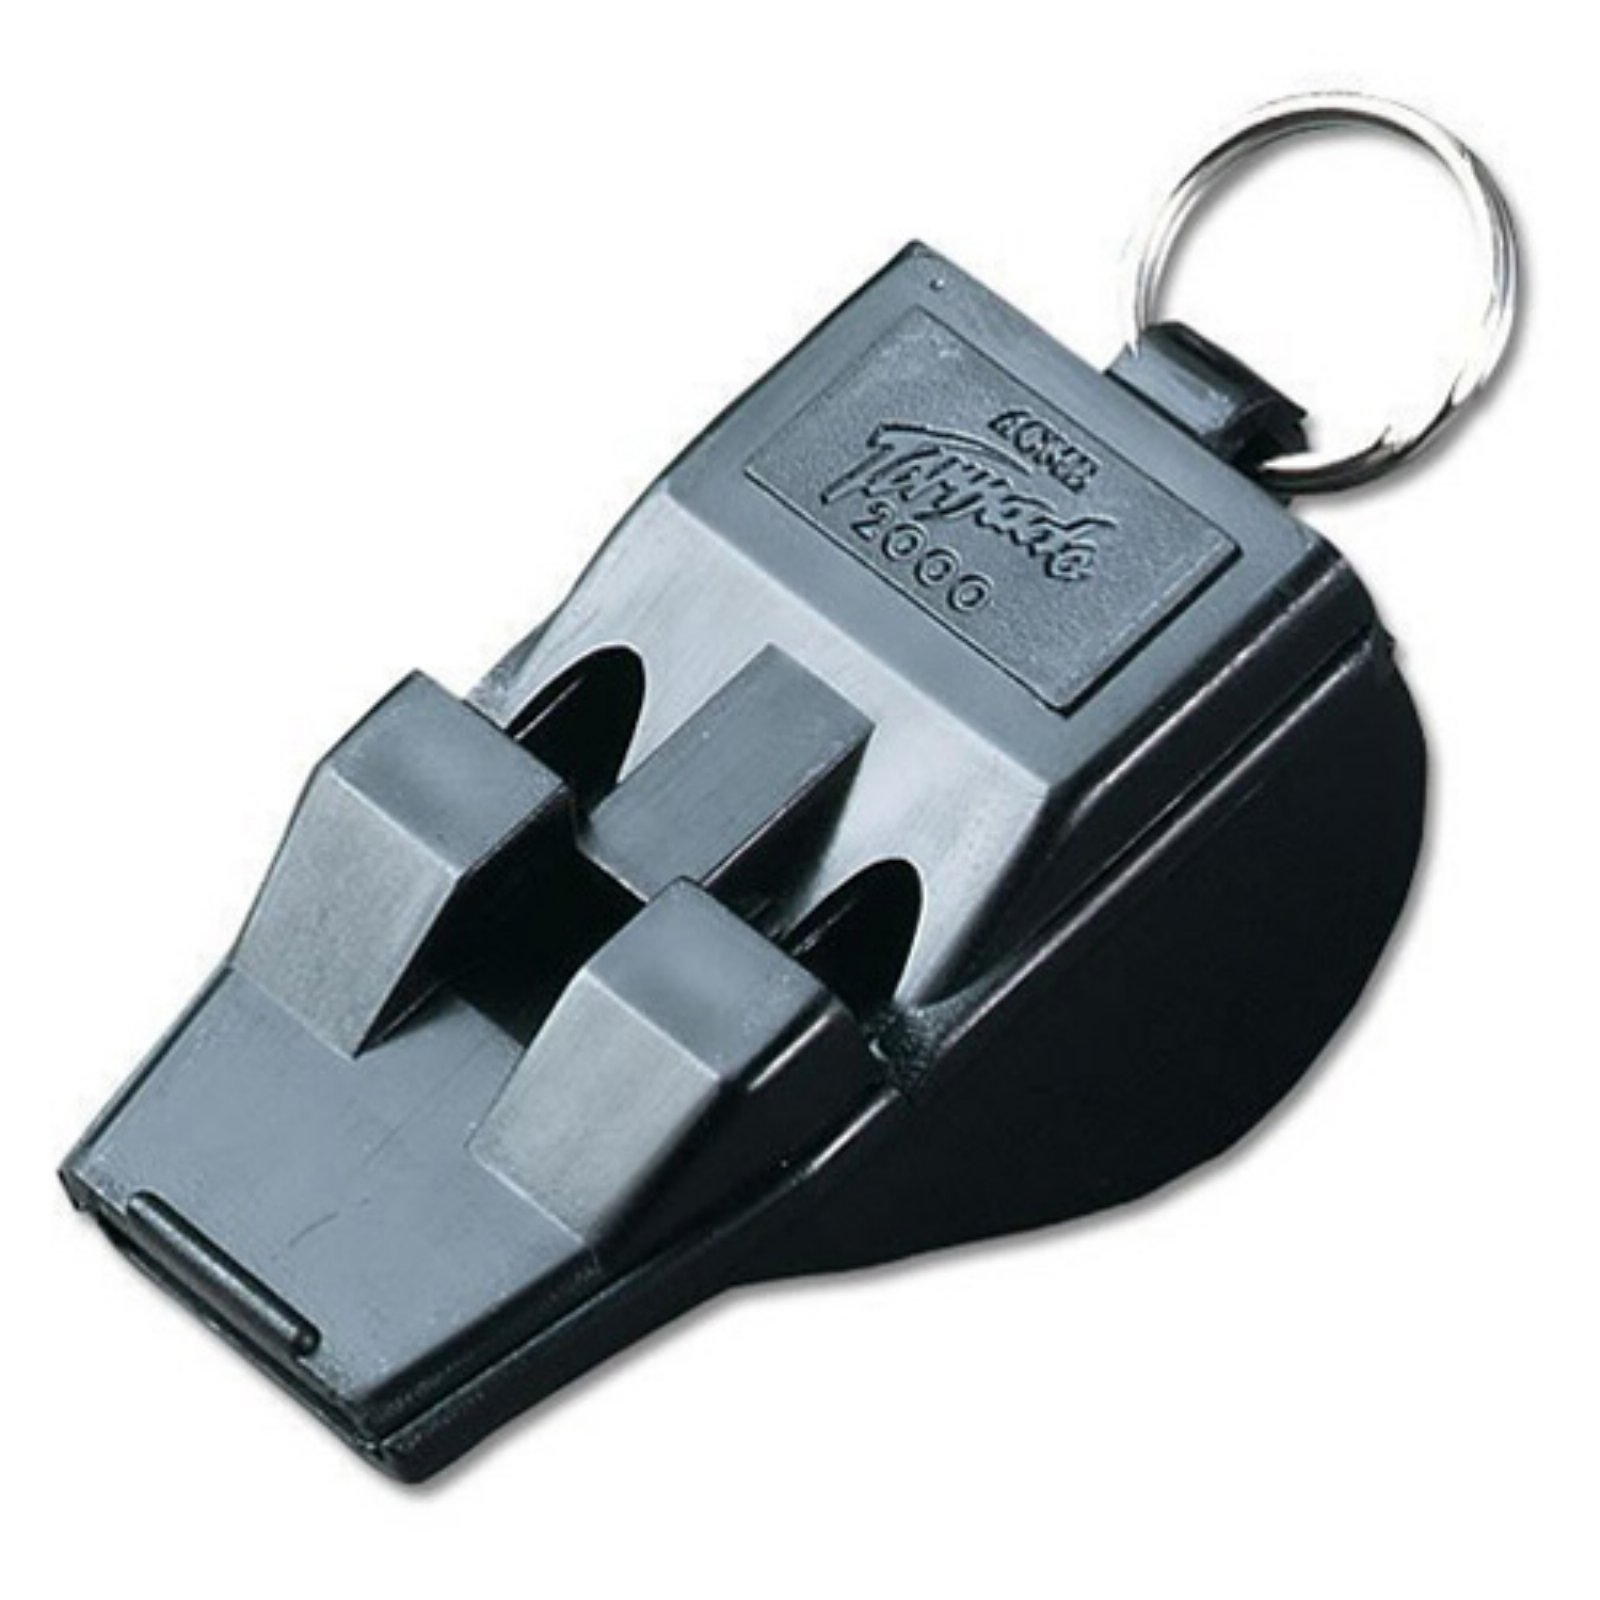 Acme Tornado 2000 Pealess Whistle, Black, 12ct